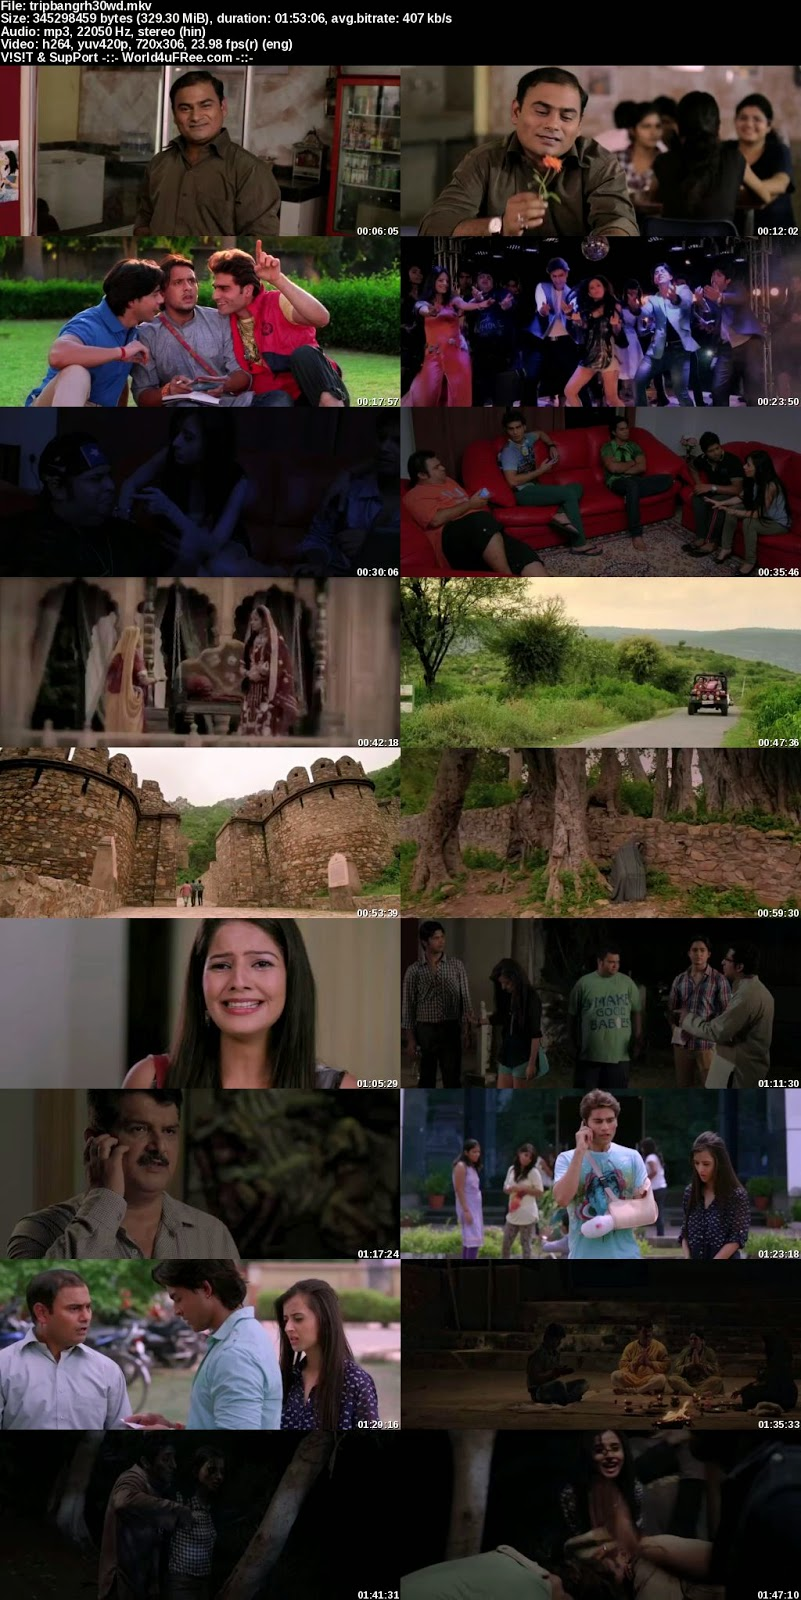 Trip to Bhangarh 2014 Full Hindi Movie Watch Online at moviesmella.com